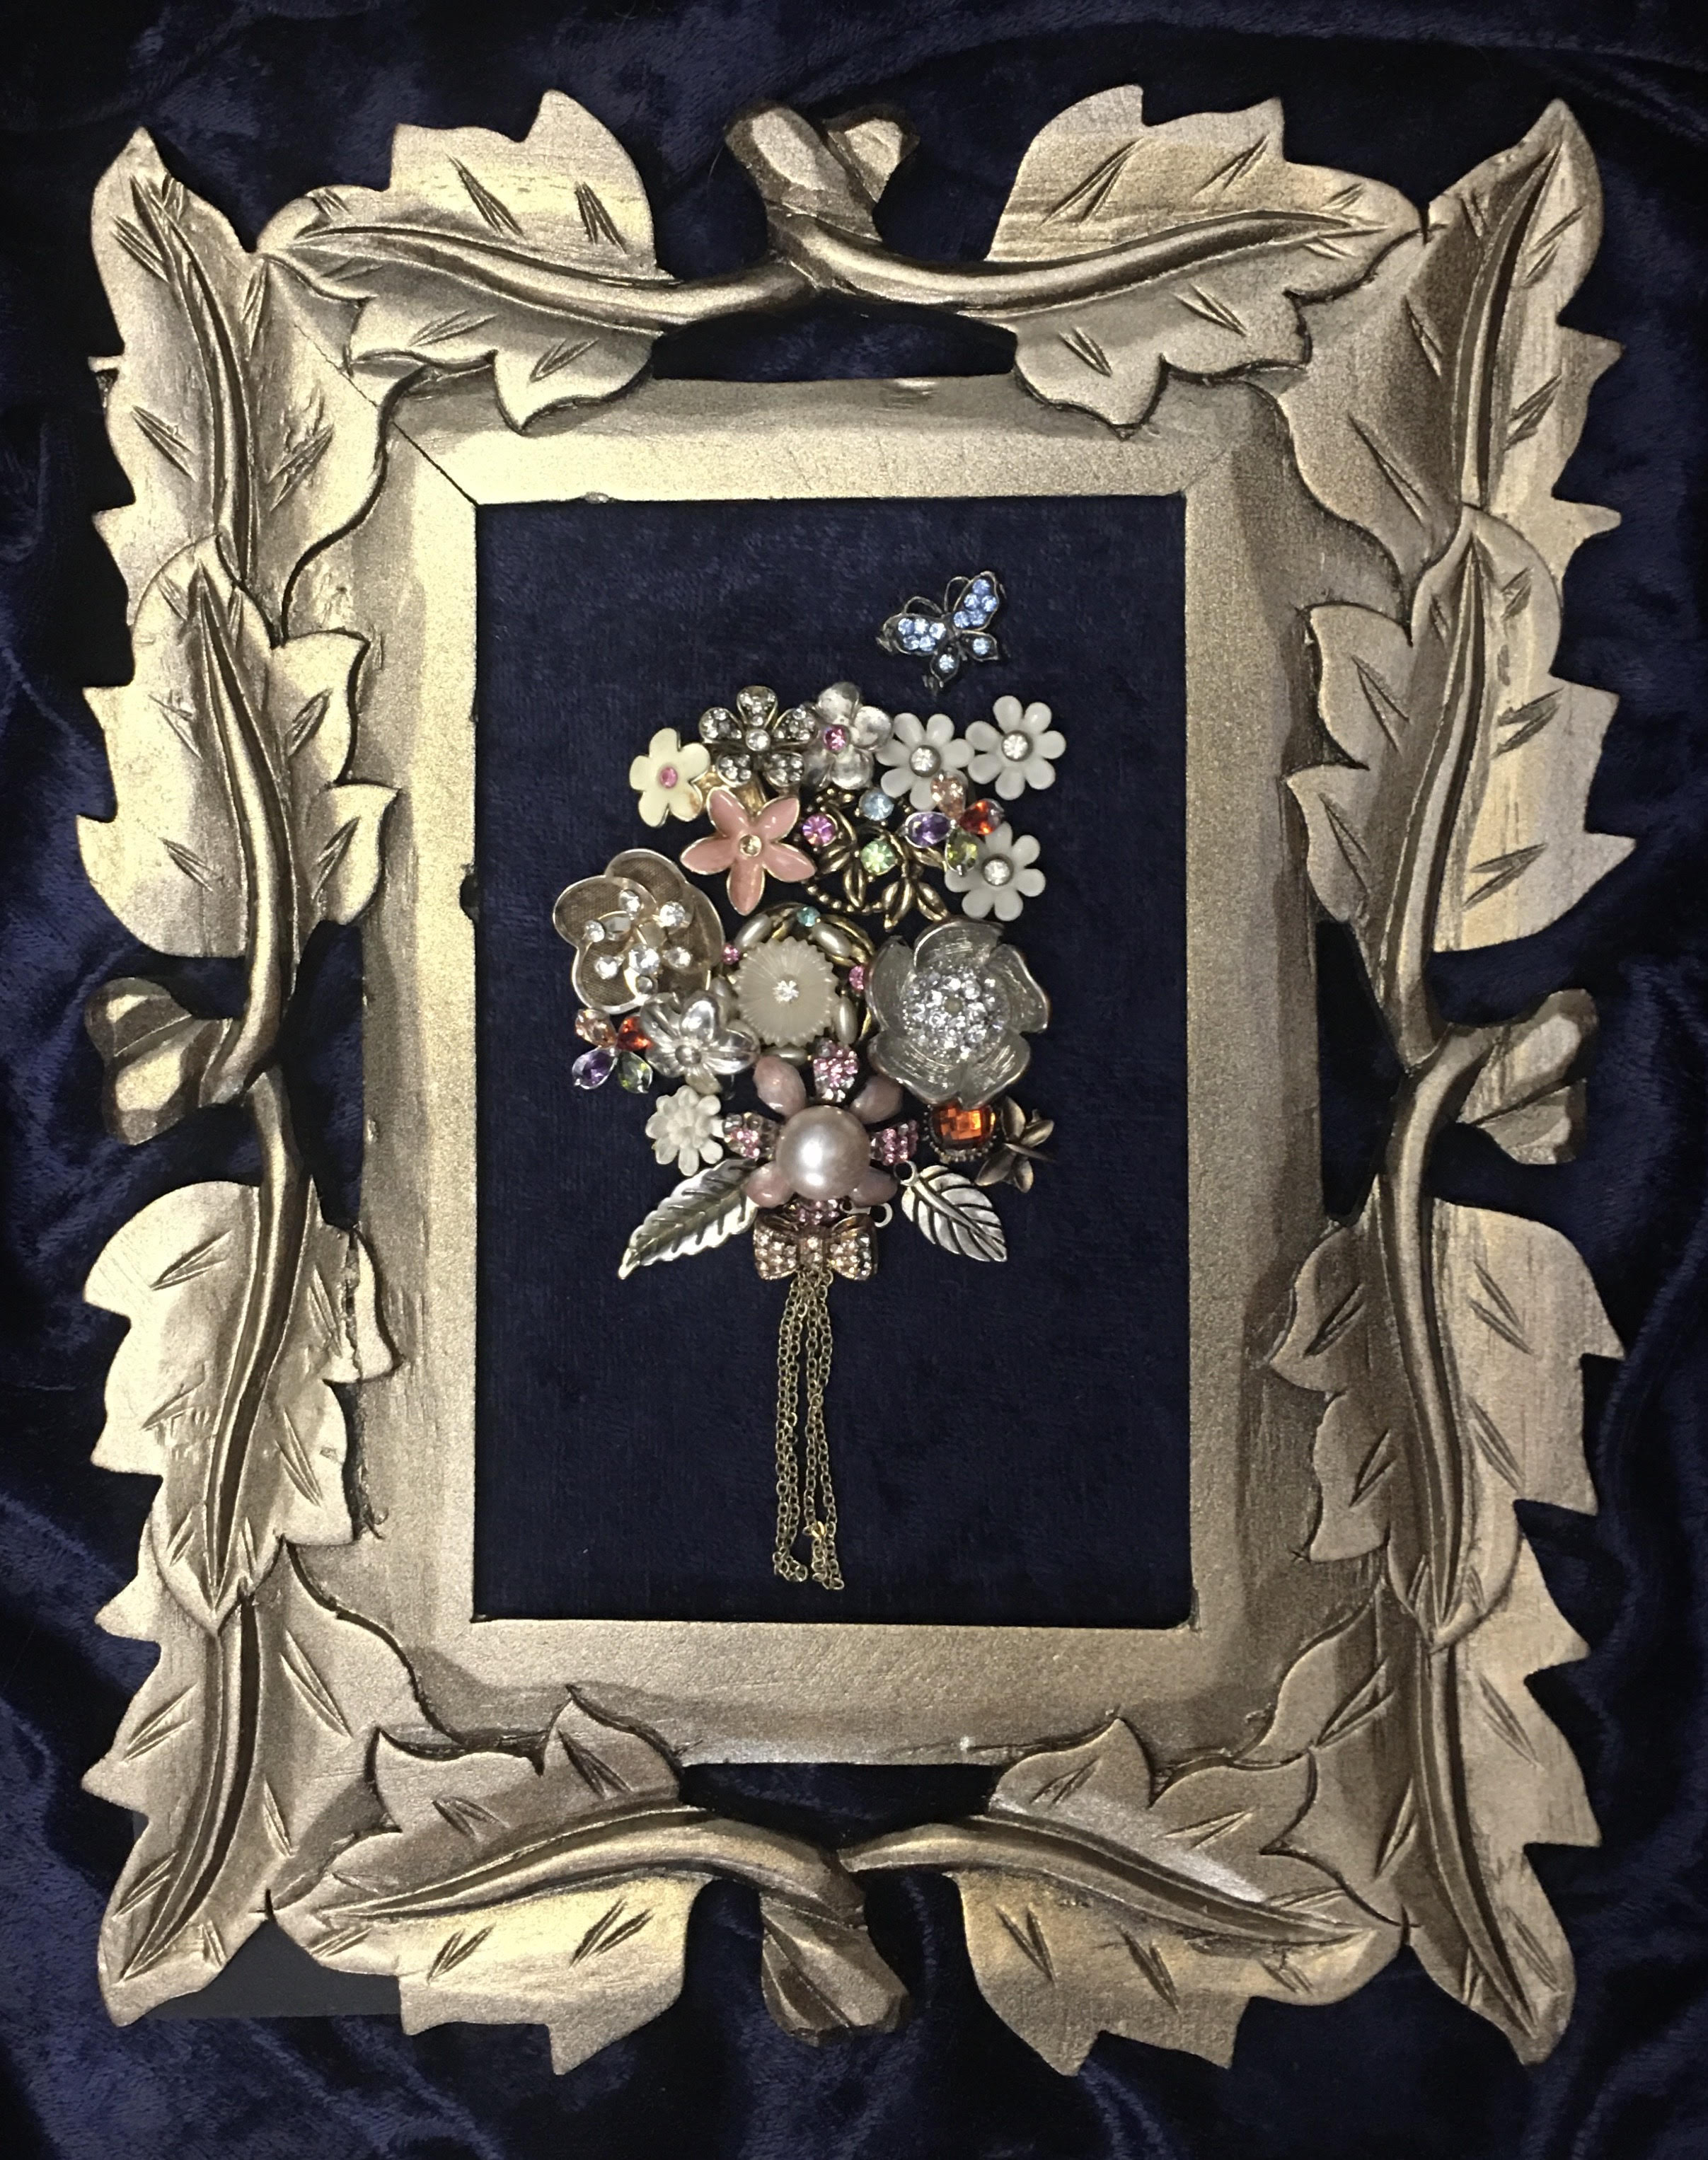 Frame with jewelry laid out on it.